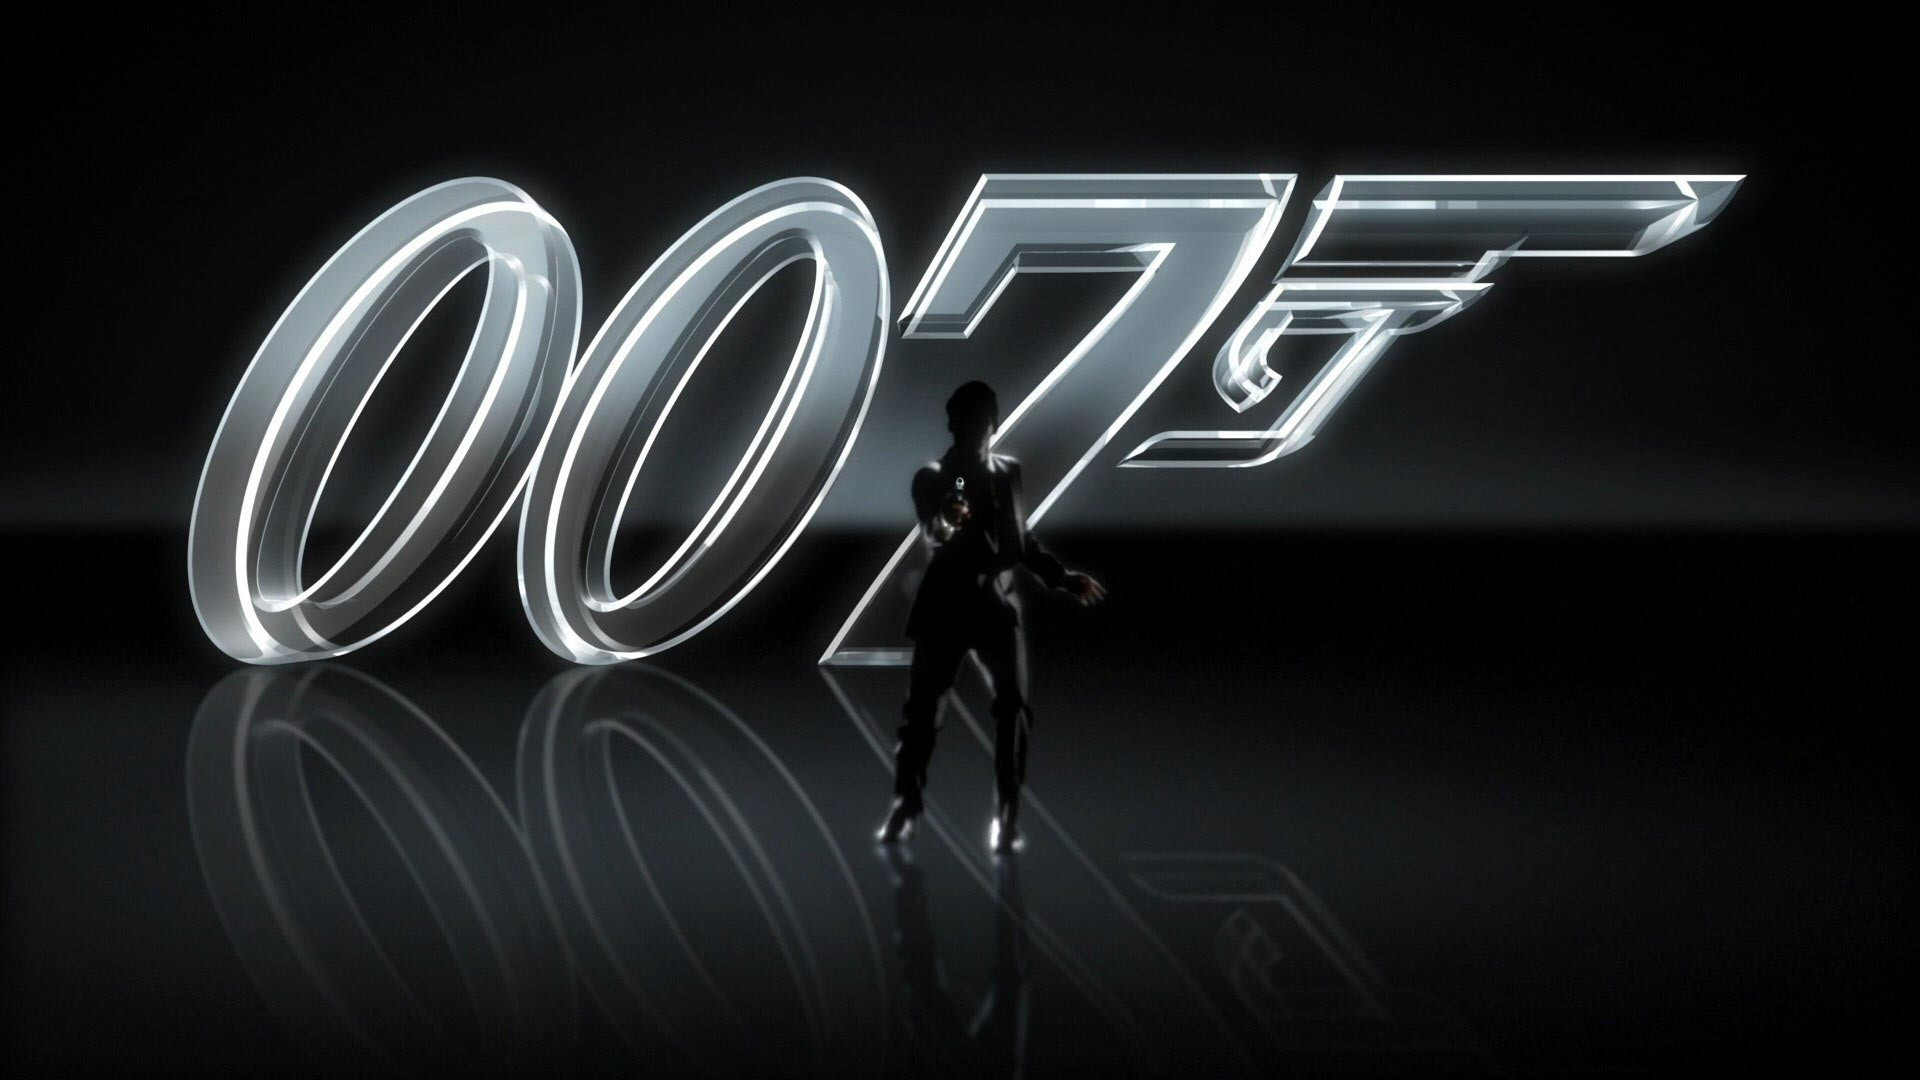 Res: 1920x1080, James Bond Spectre wallpapers - HD Wallpapers